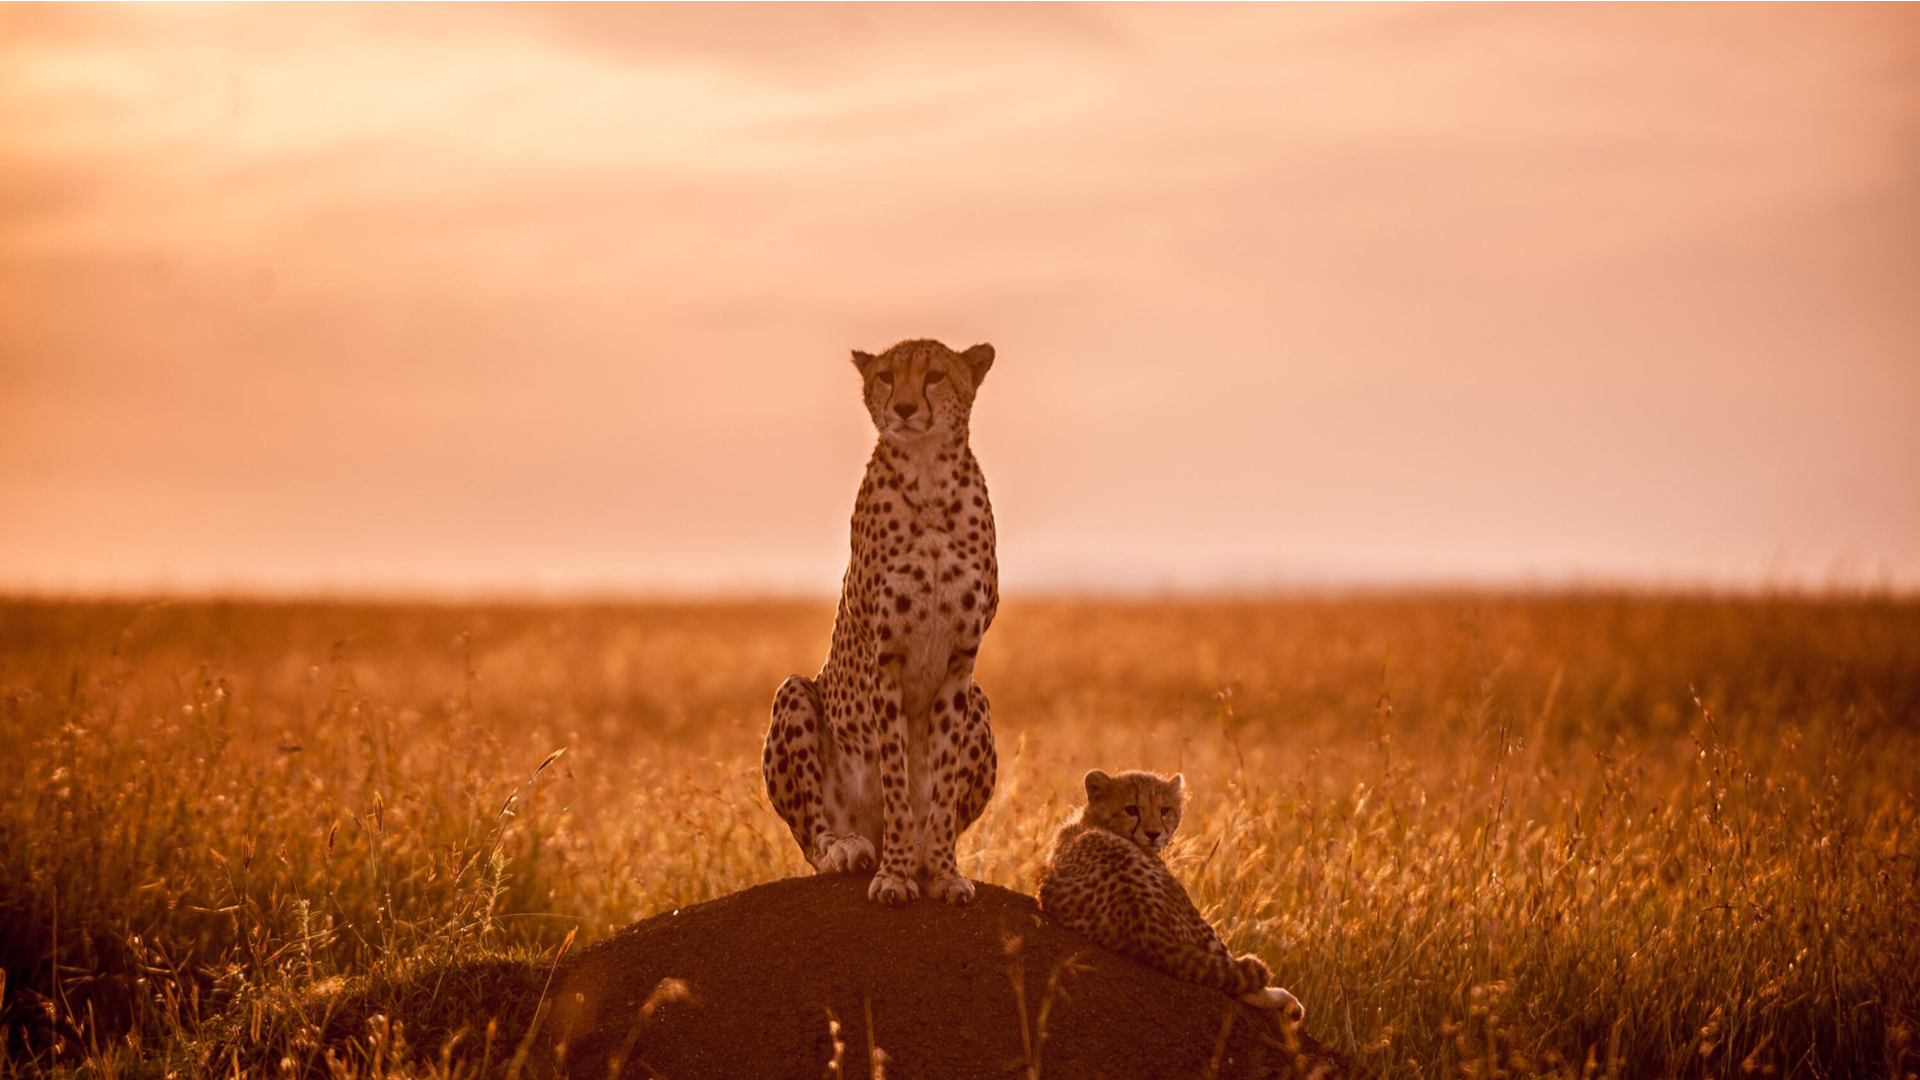 Why Safari Consultants header cheetah cub mount sunlight